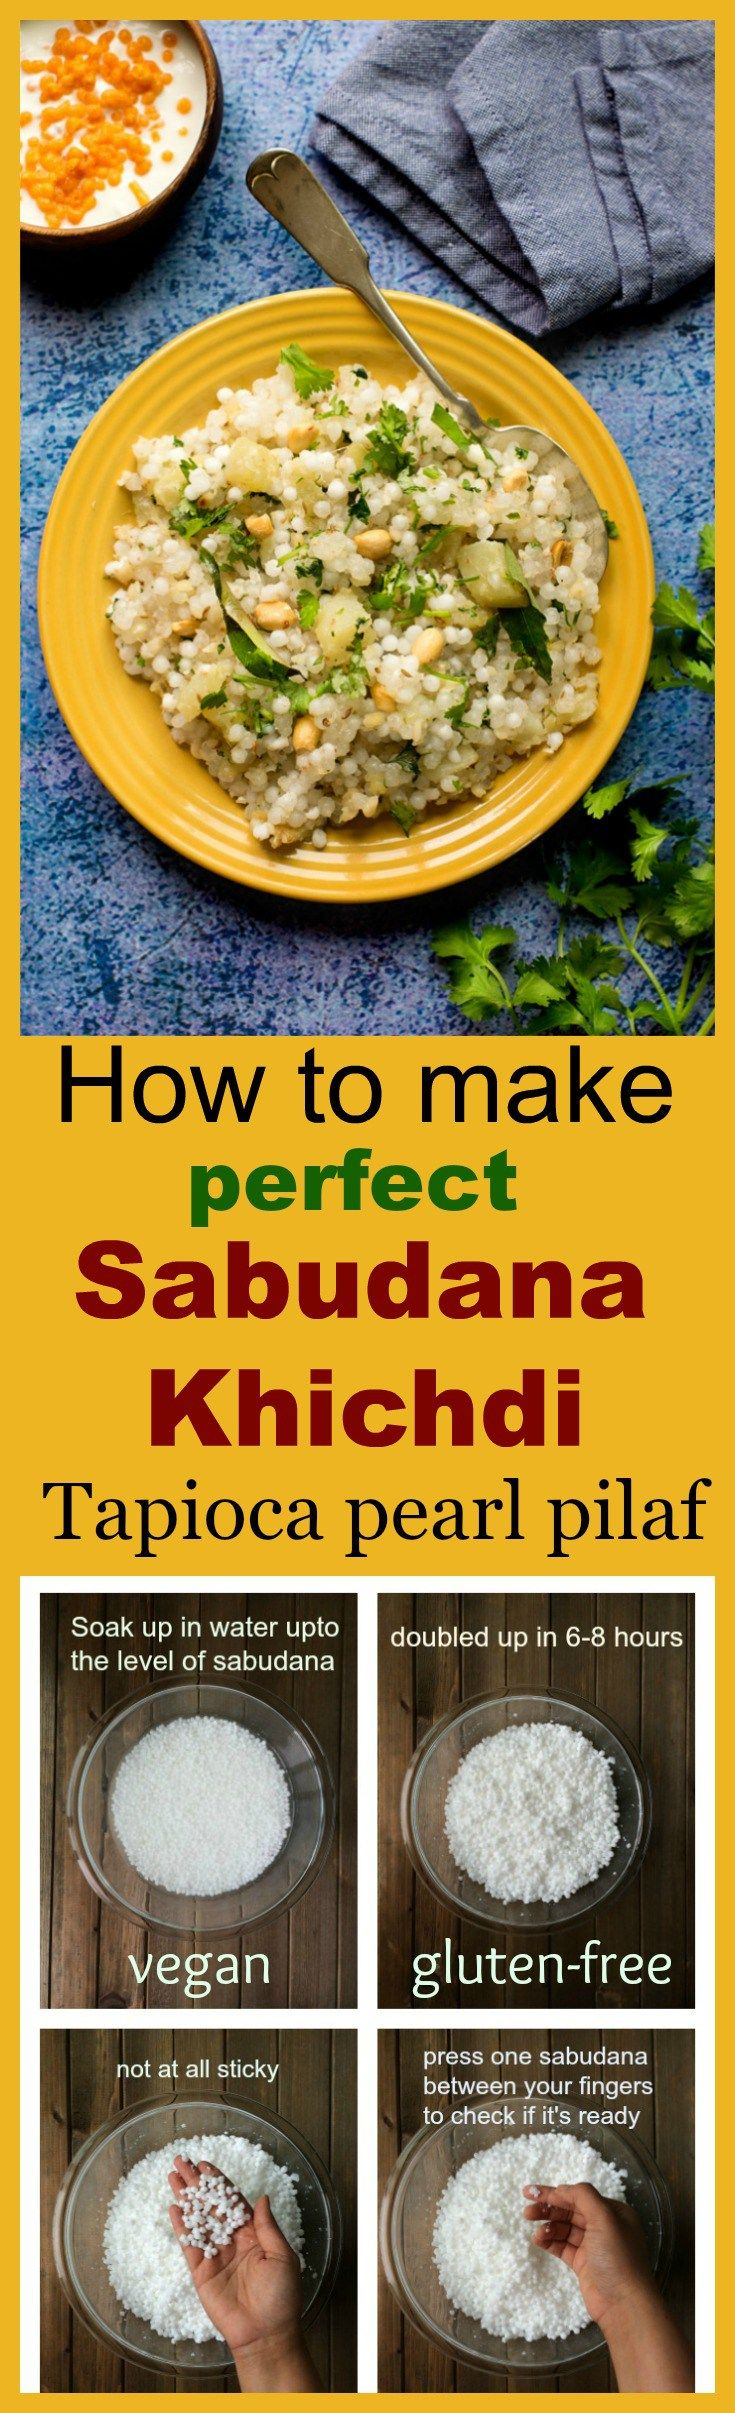 How to make perfect non-sticky Sabudana Khichdi / tapioca pearl pilaf . Step by step easy instructions given. Vegan and gluten free .